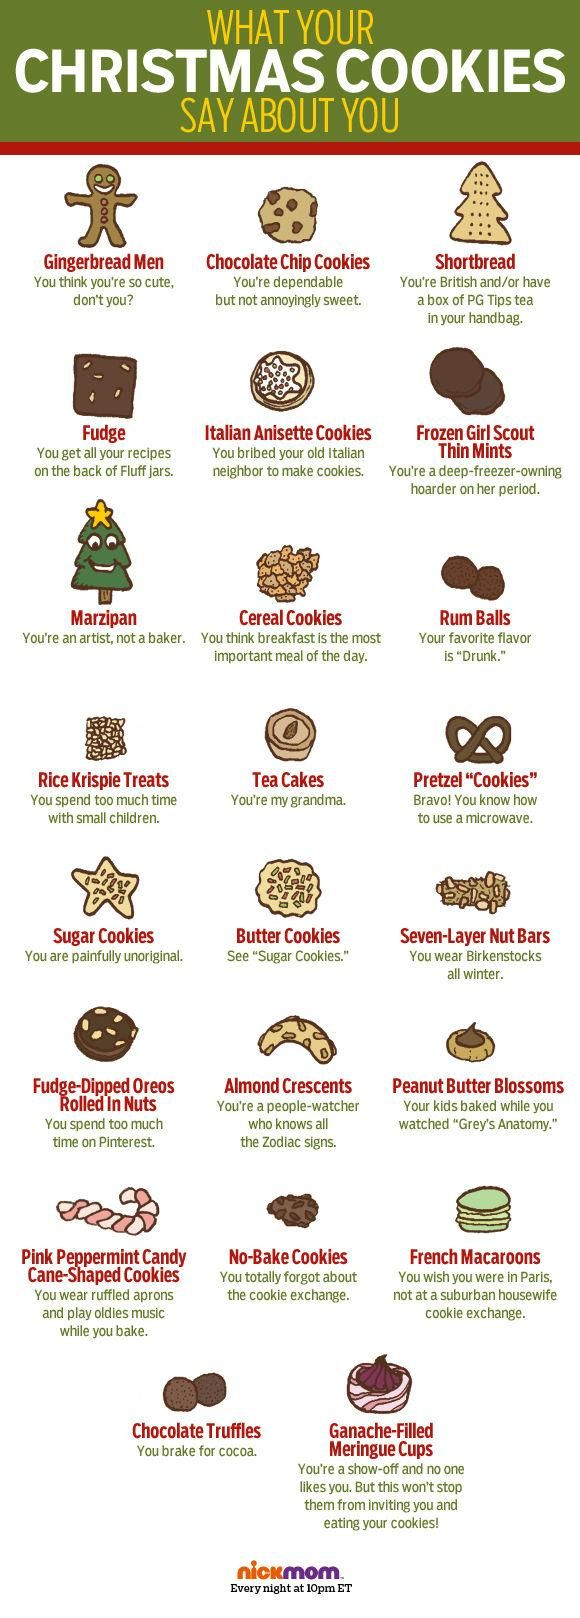 What your Christmas cookies say about you.